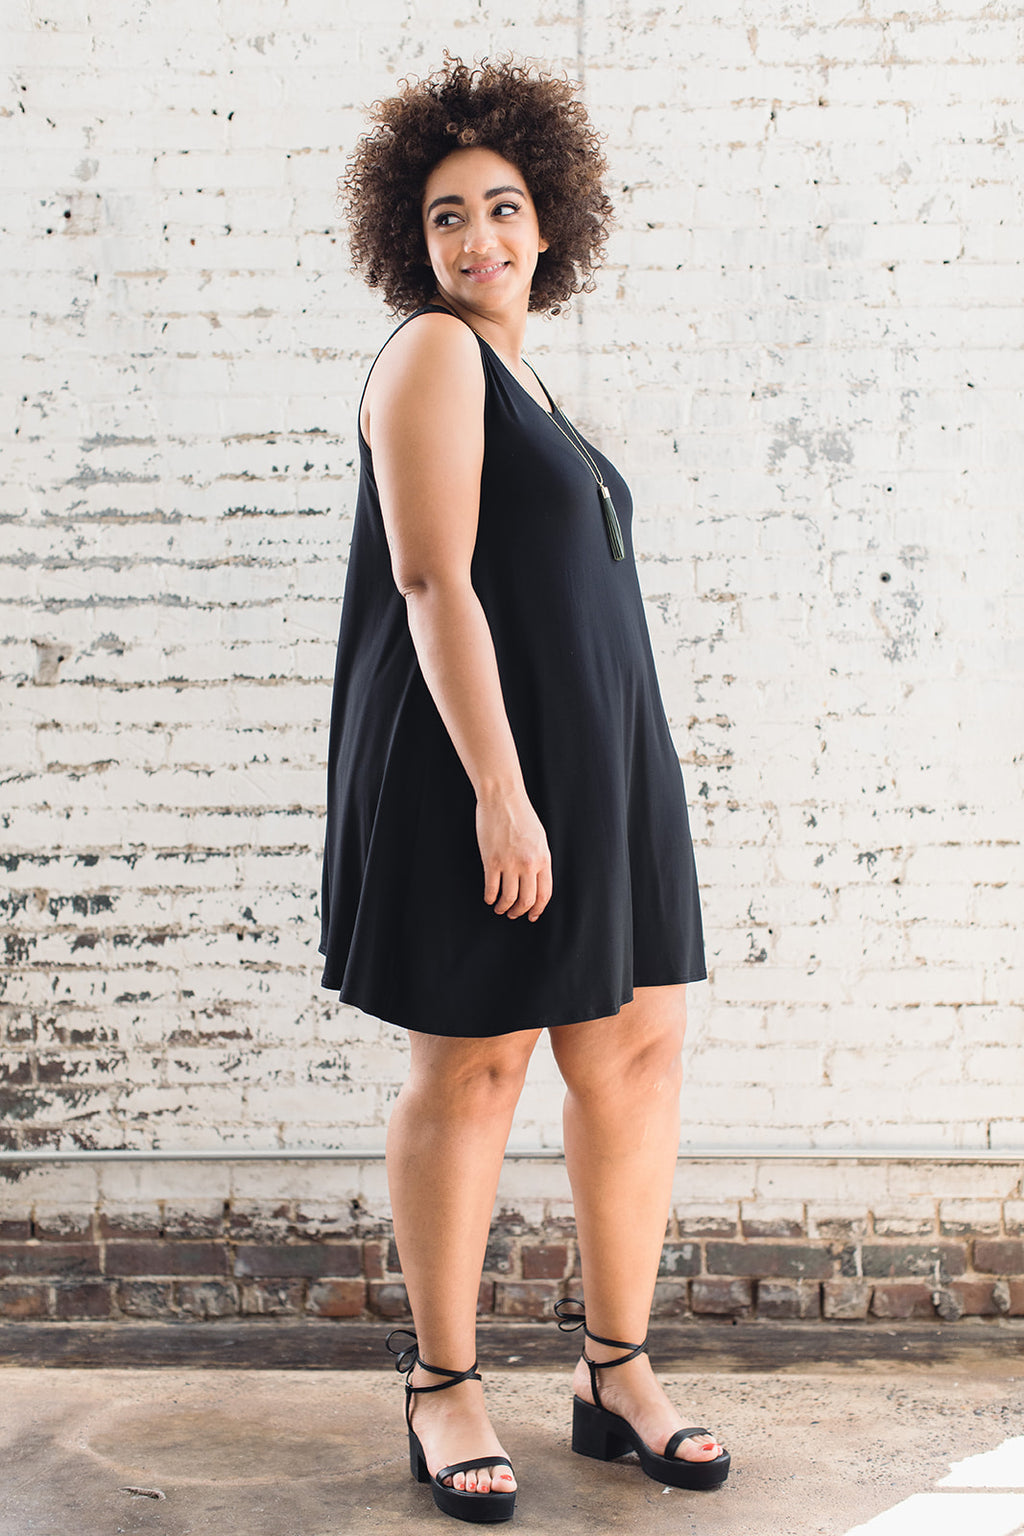 Sustainably made sleeveless flowy black dress